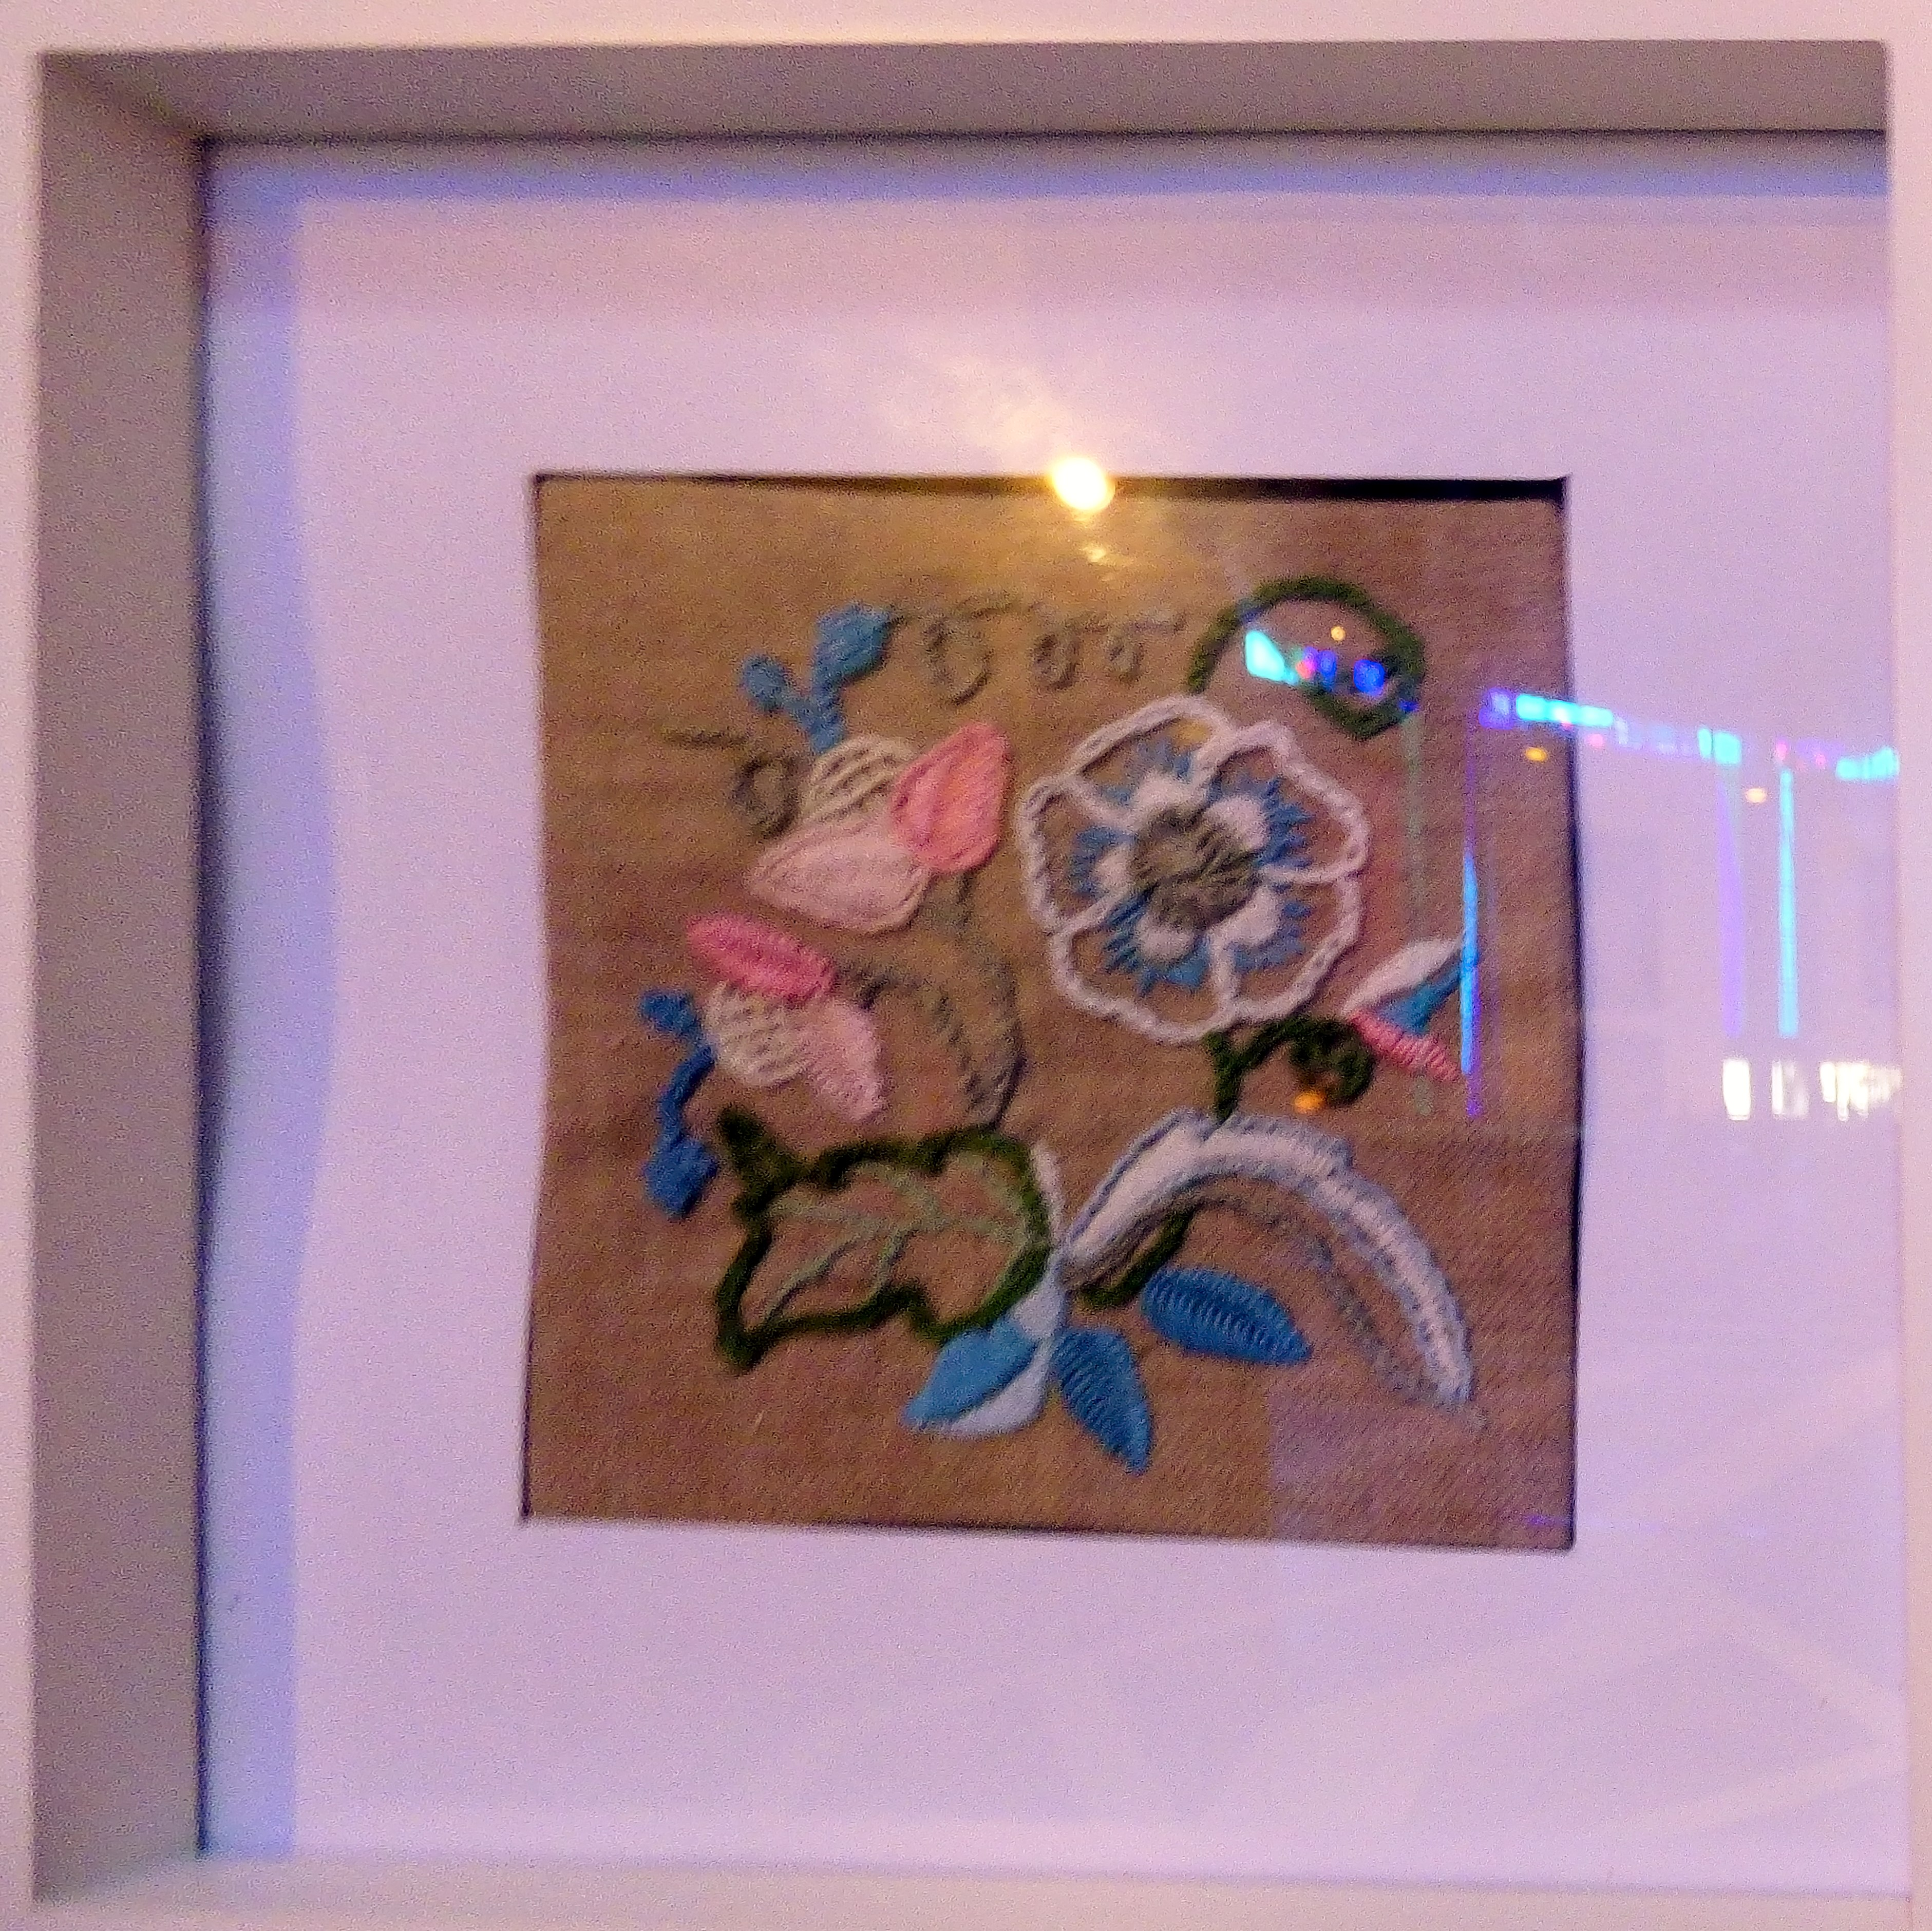 CREWELWORK by S.Everitt, at Embroidery for Pleasure exhibition, Liverpool Metropolitan Cathedral 2016